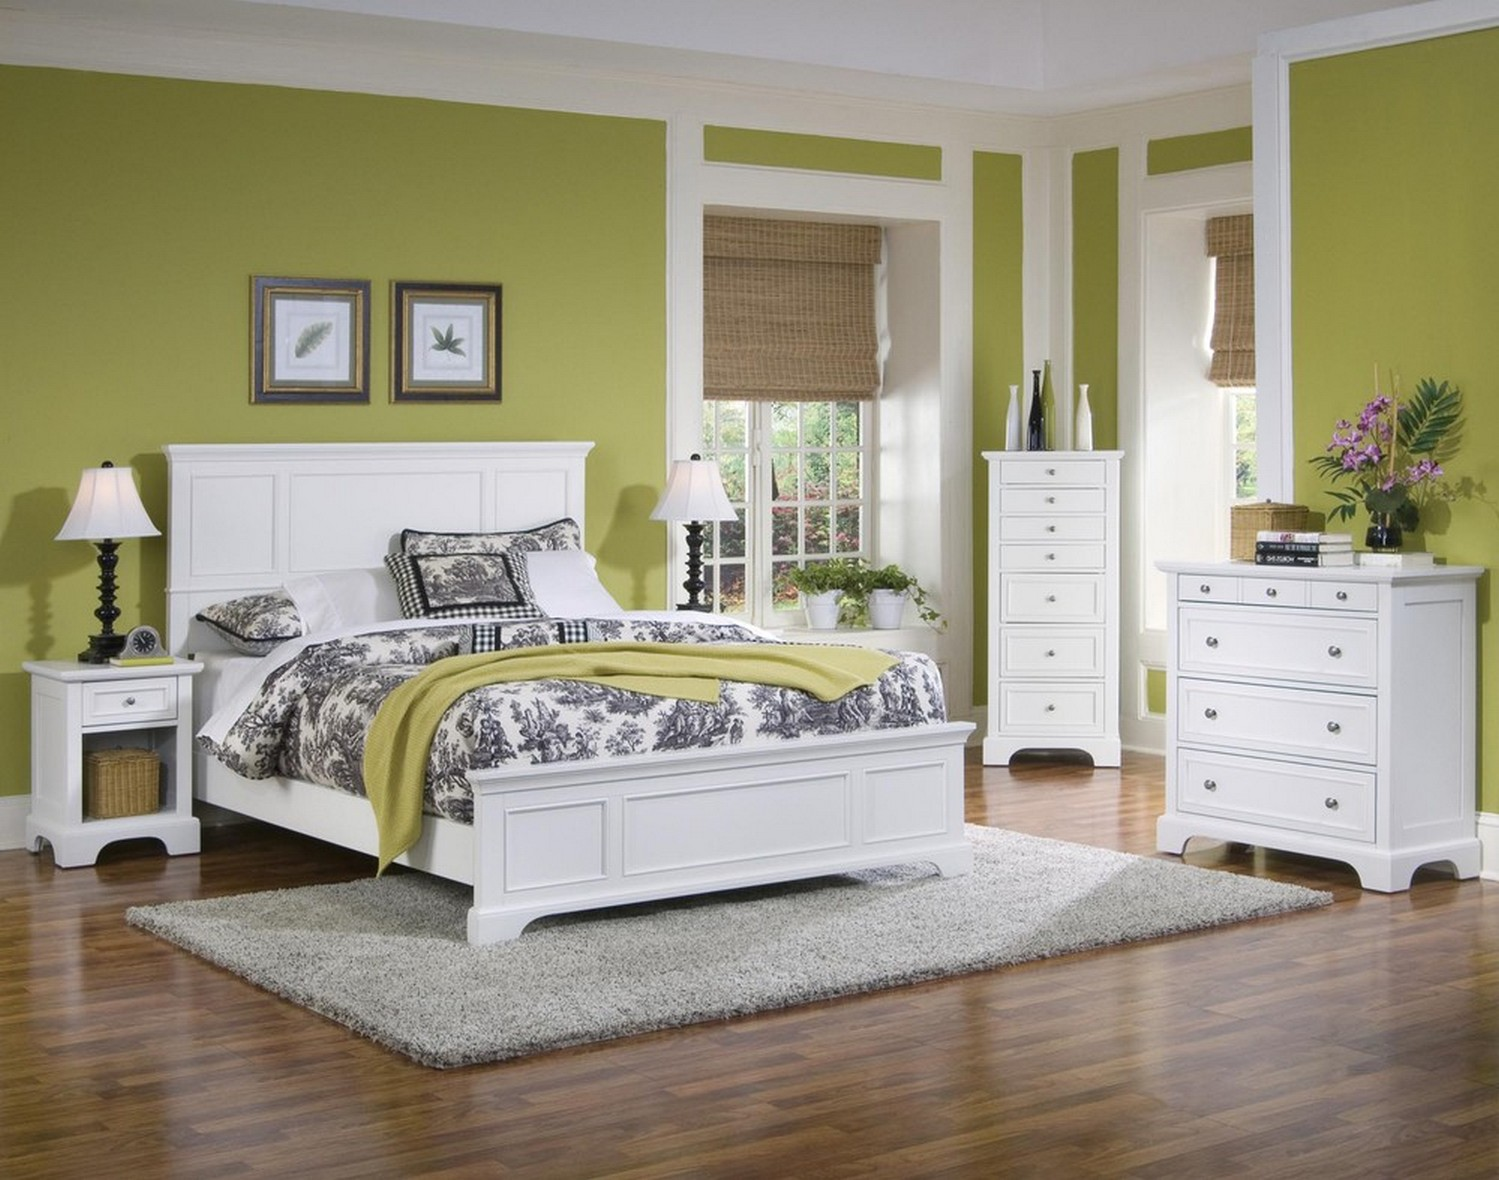 bedroom furniture sets without bed photo - 8